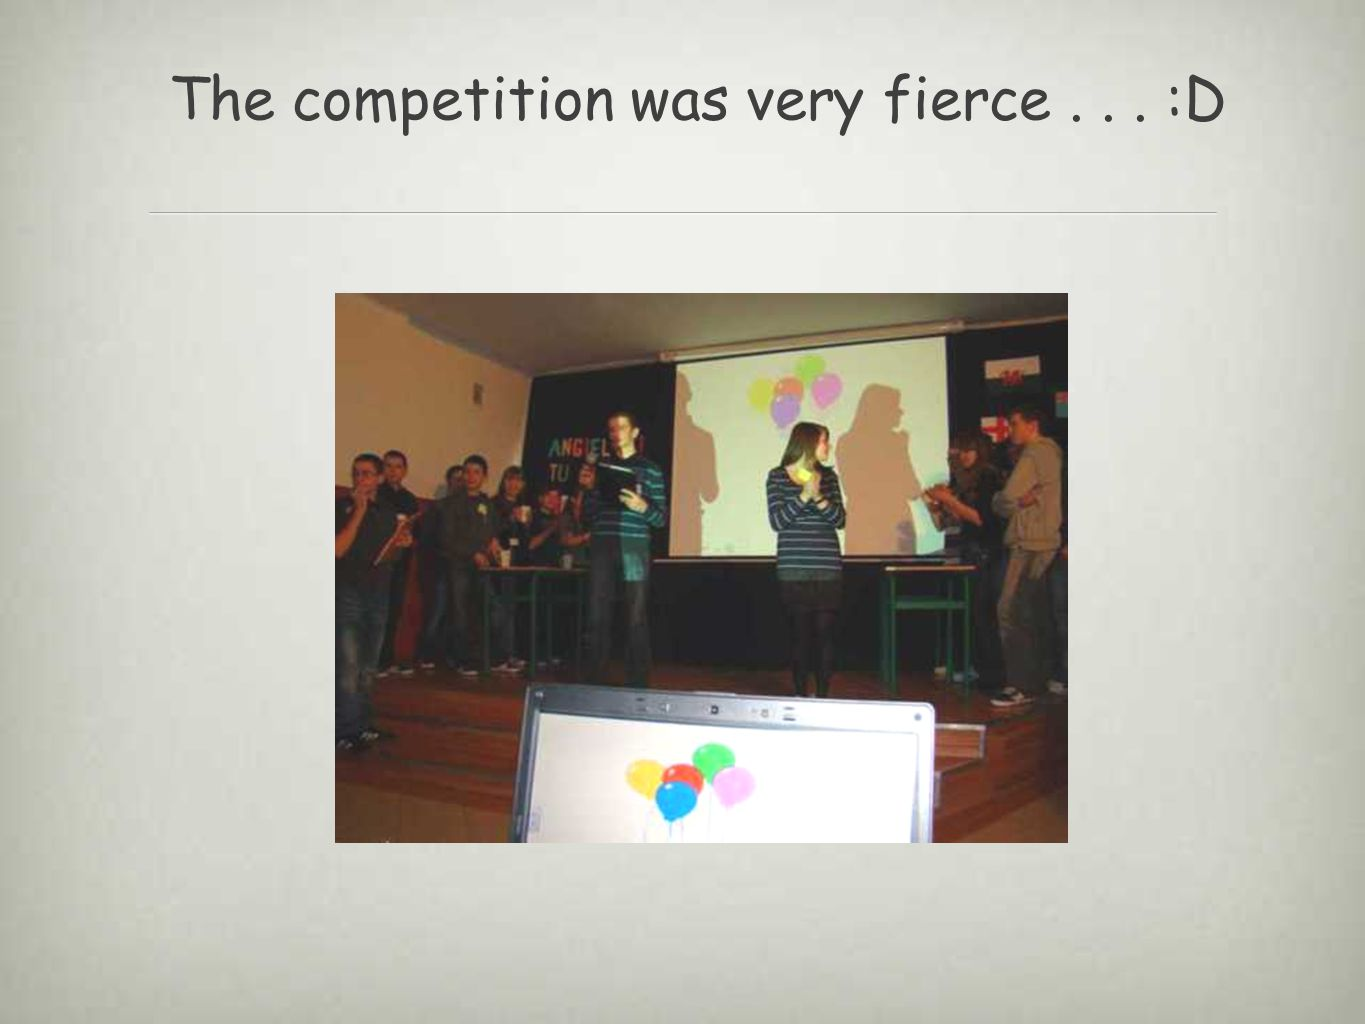 The competition was very fierce... :D